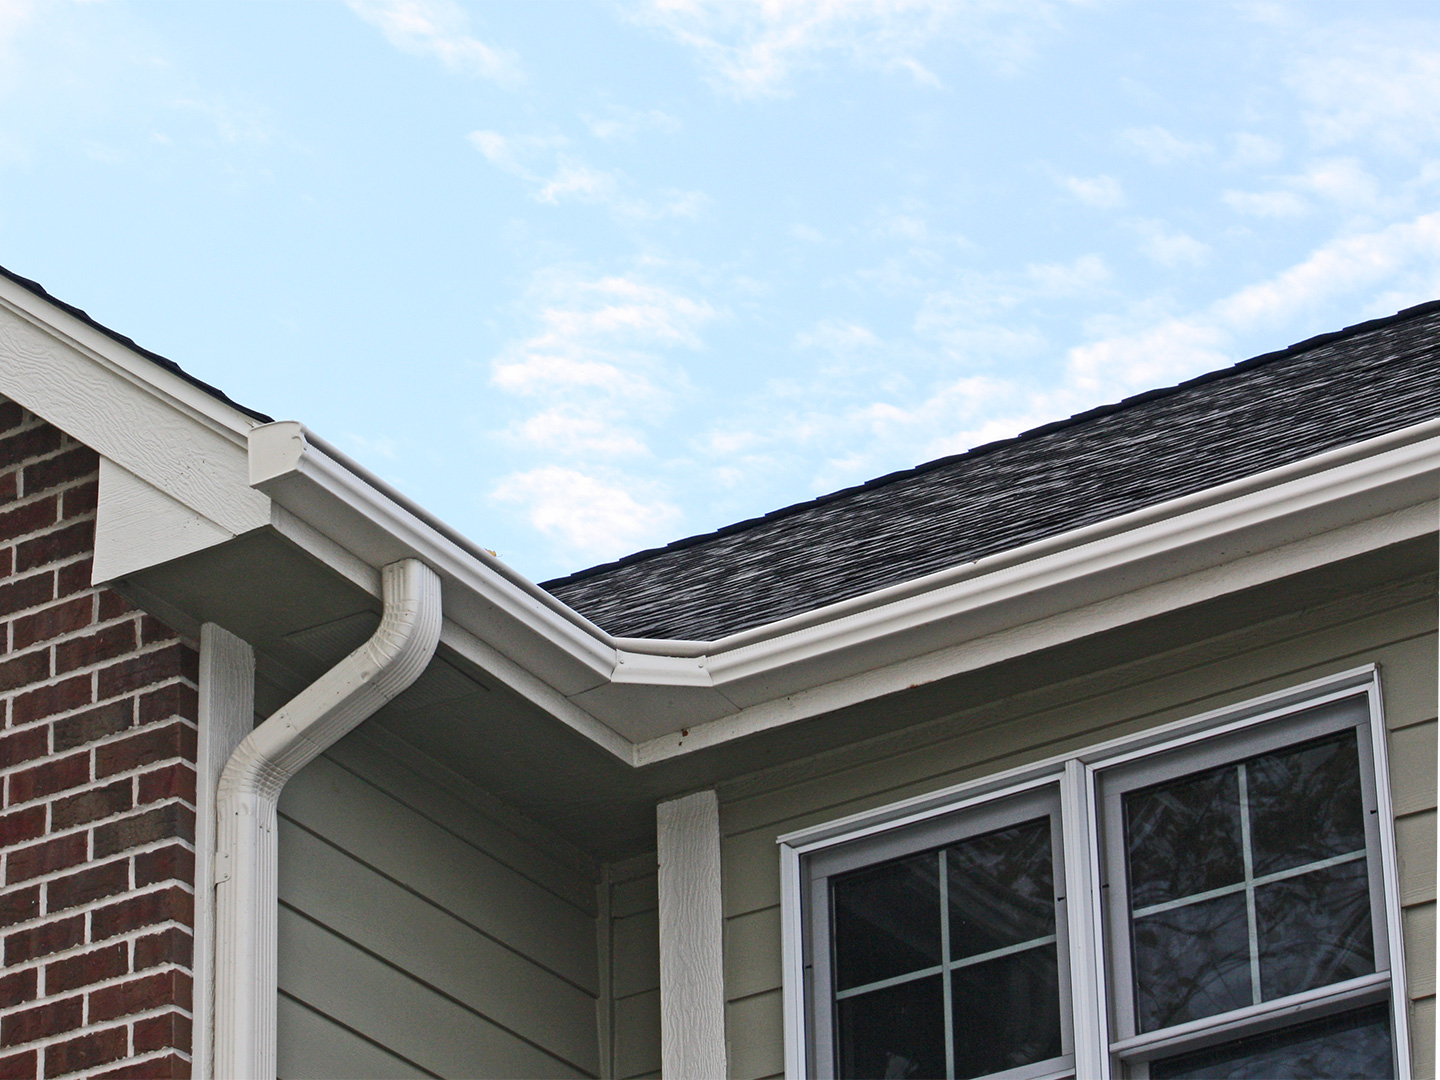 LeafGuard® gutters are also a top choice among Iowa homeowners because they're built to last and look great on any home.